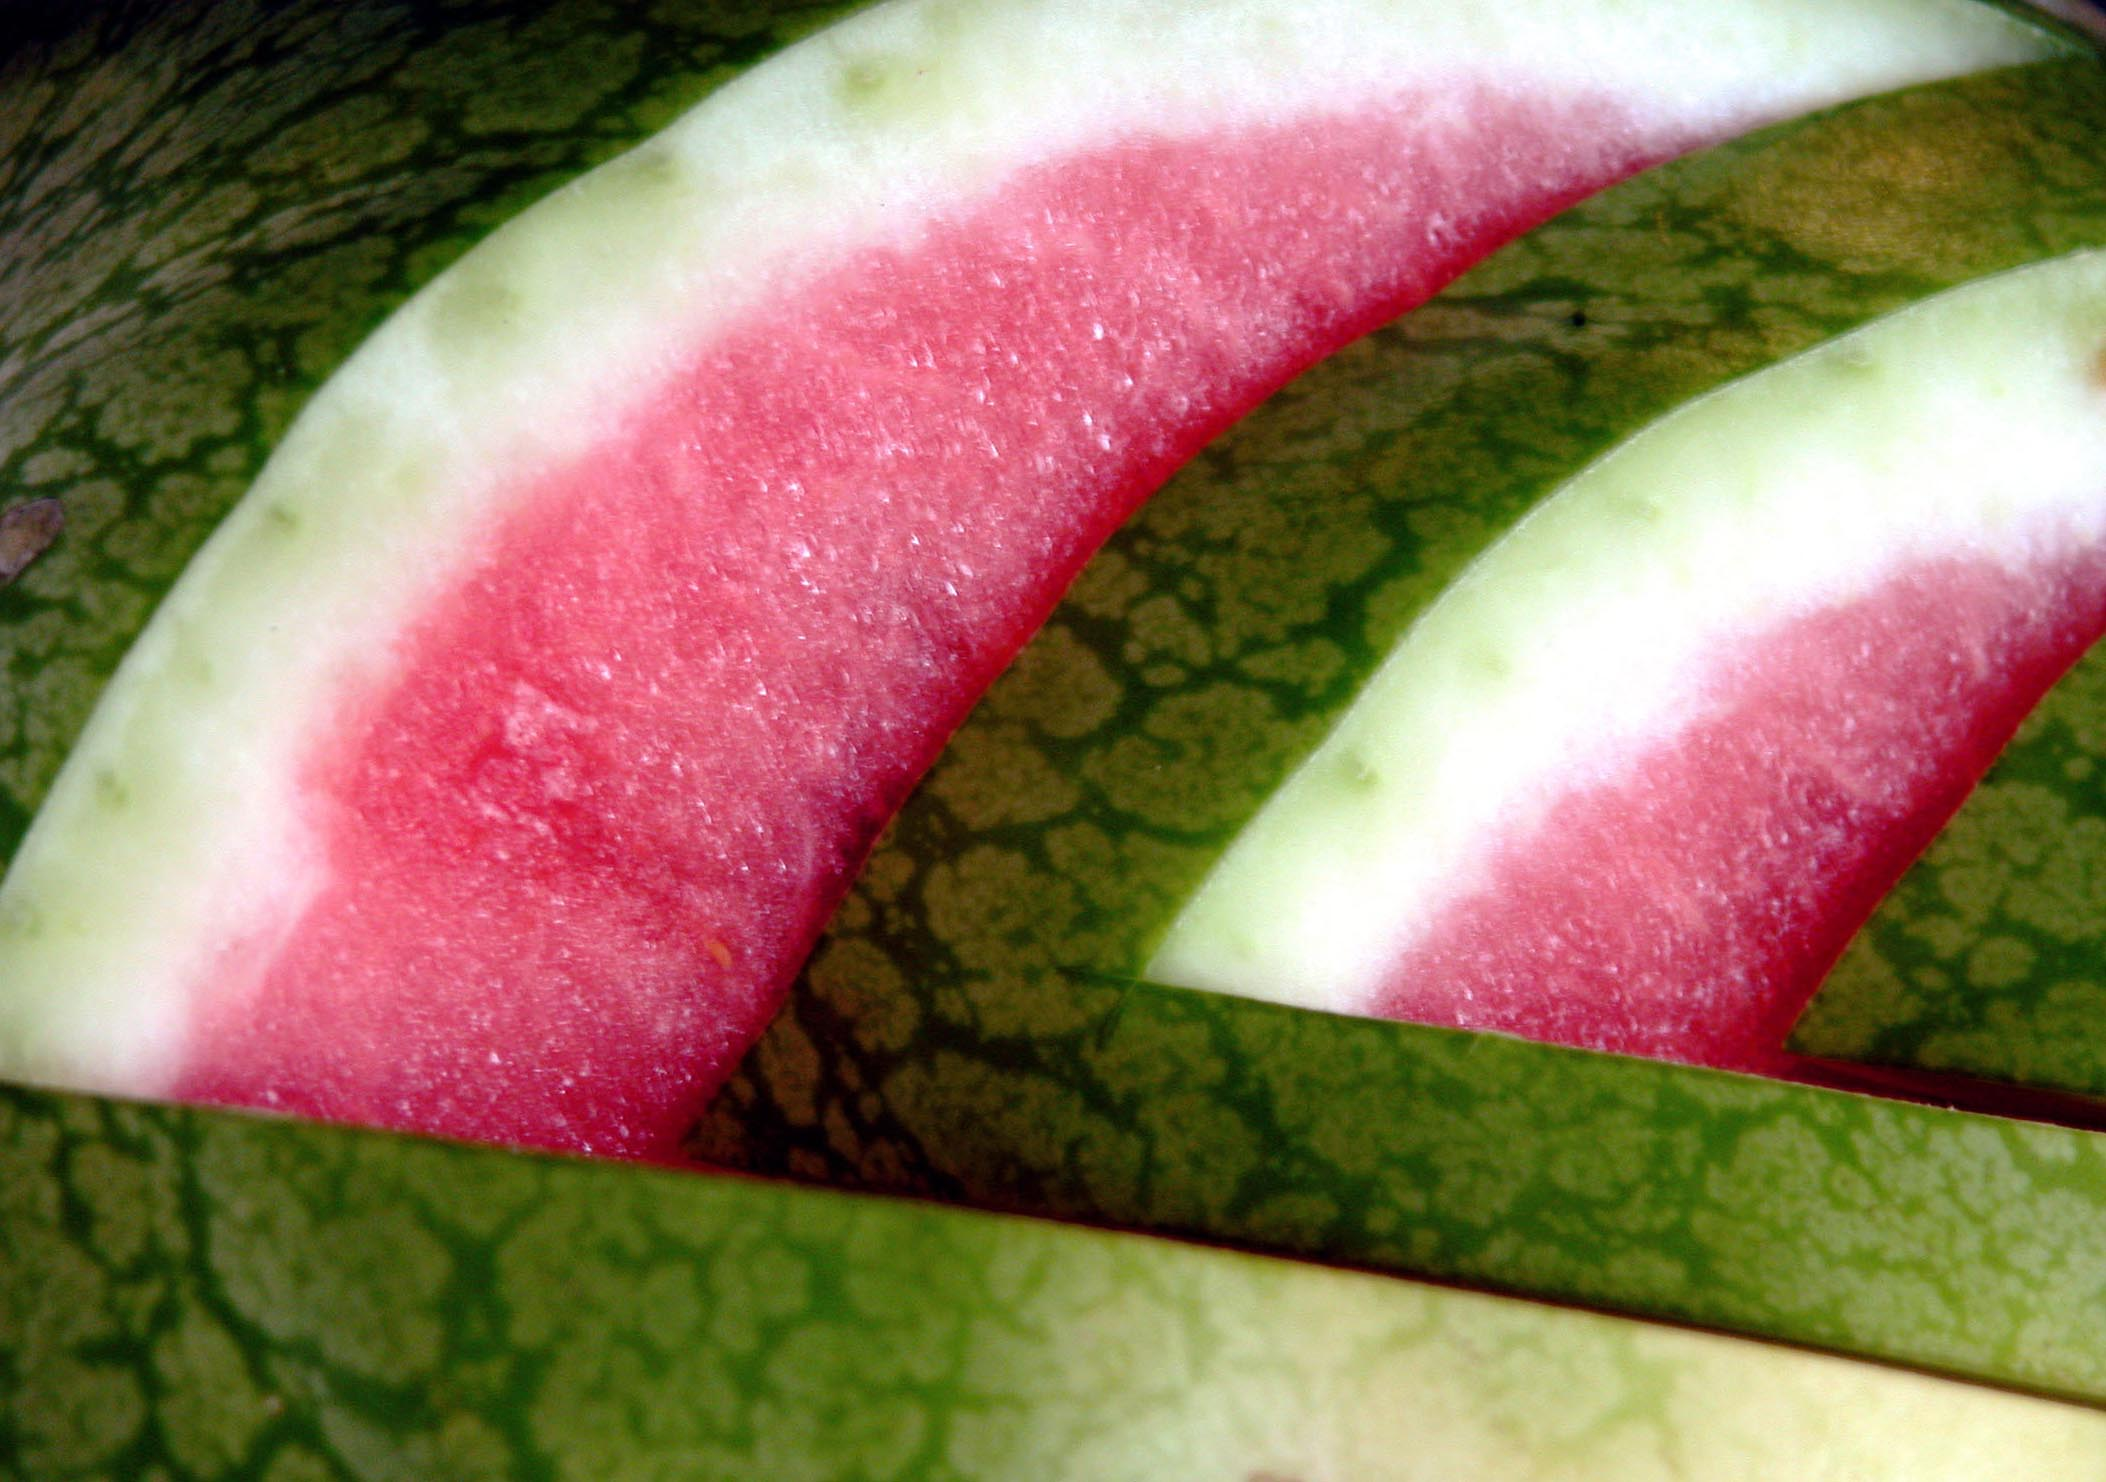 Because of Citrulline, Watermelon is One of the Best Foods for Men